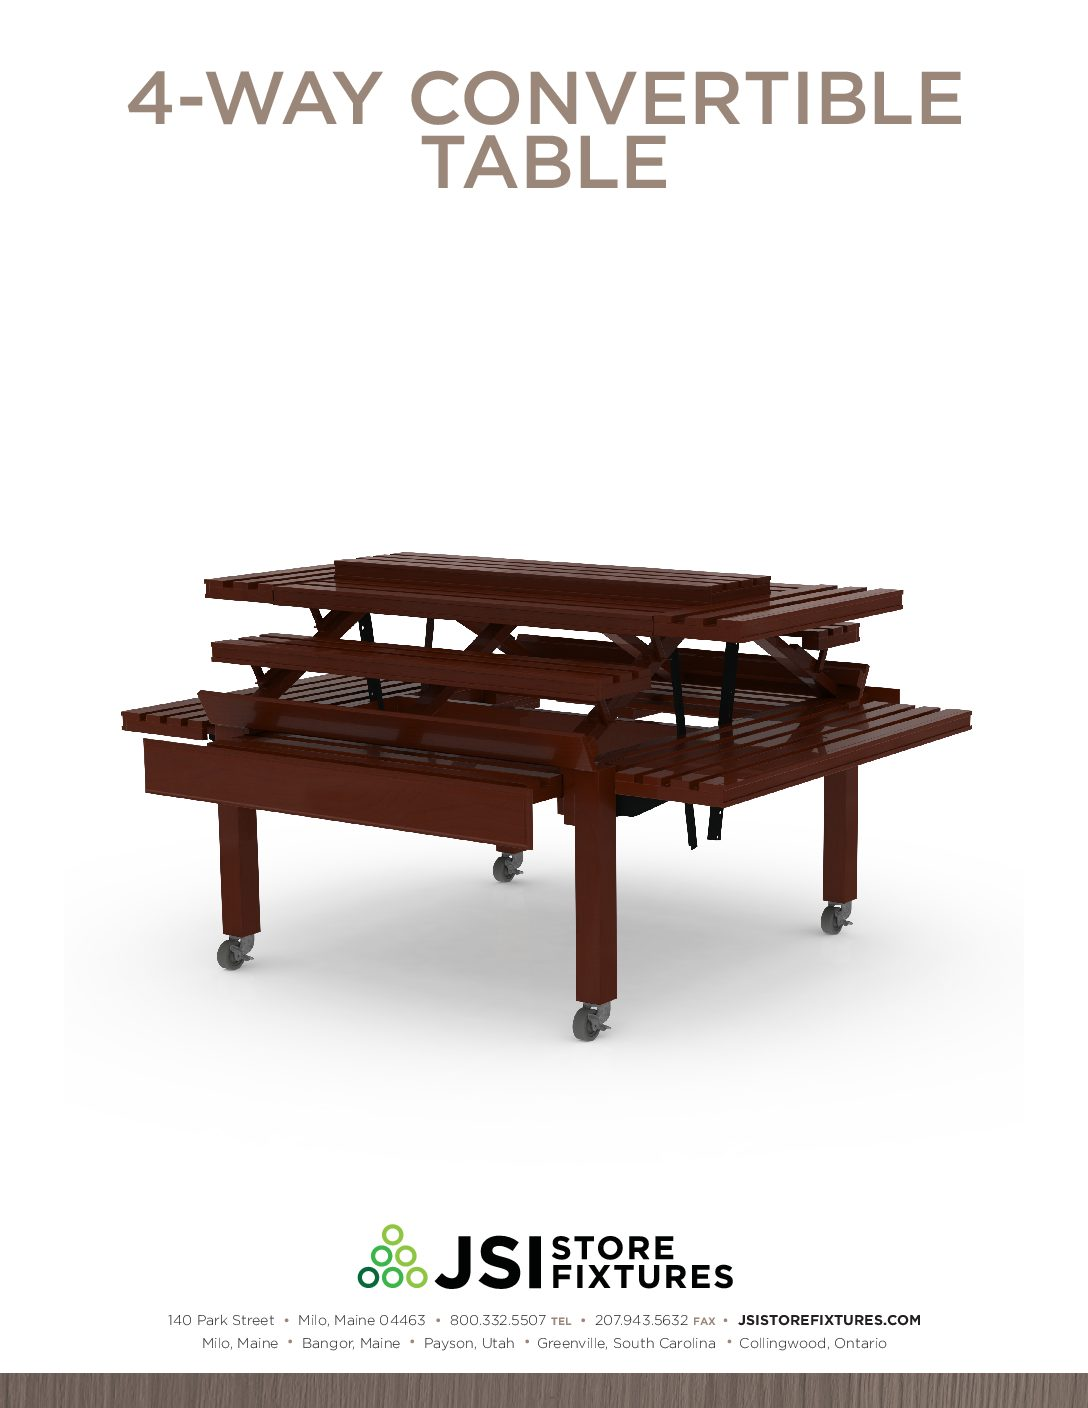 4-Way Convertible Table Spec Sheet